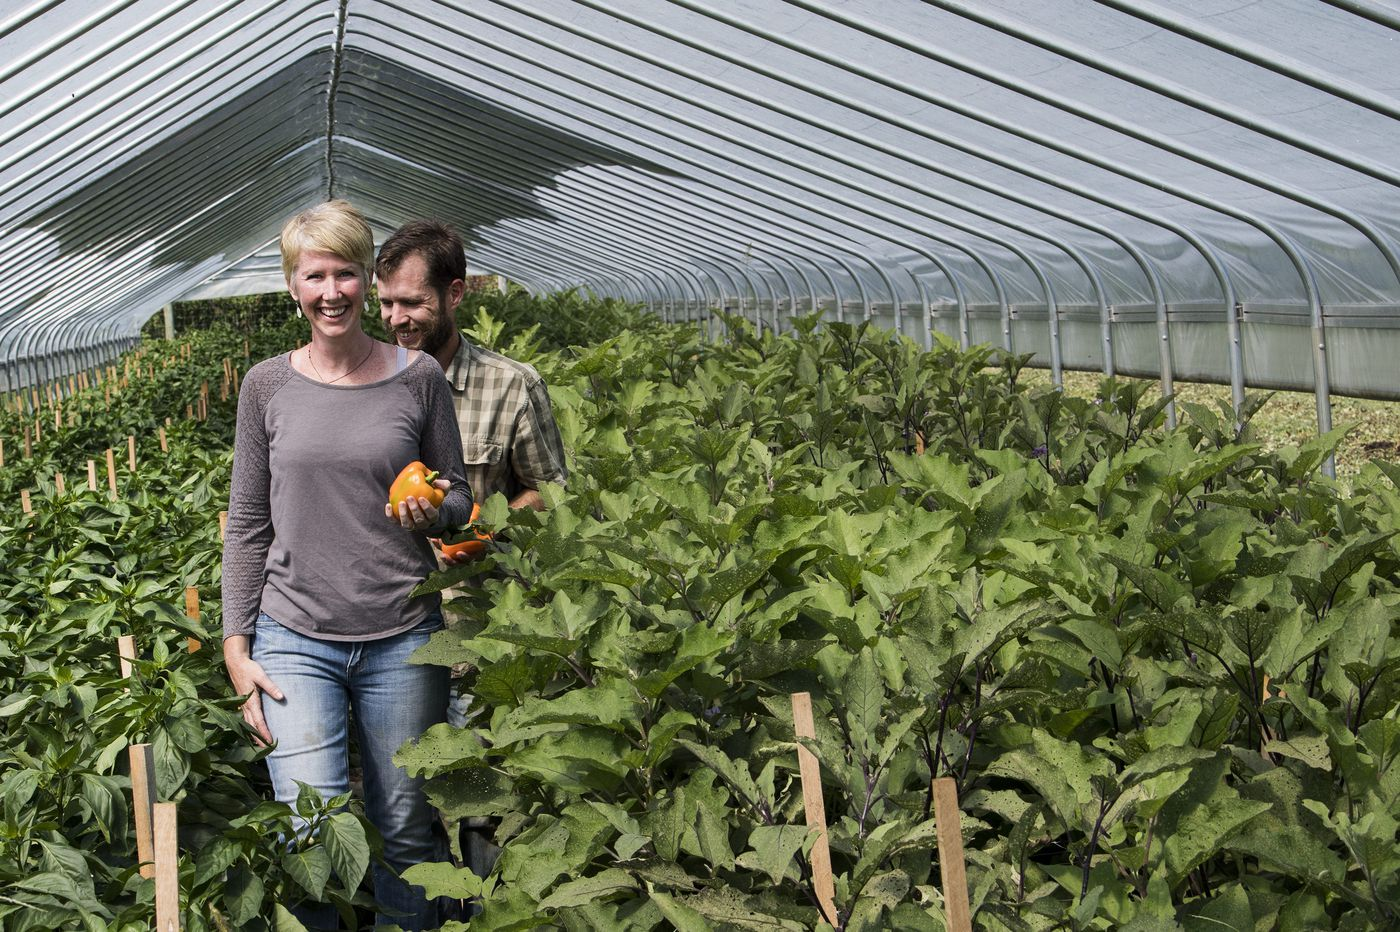 As land prices climb, small farmers look to leasing as a way to stay in the game